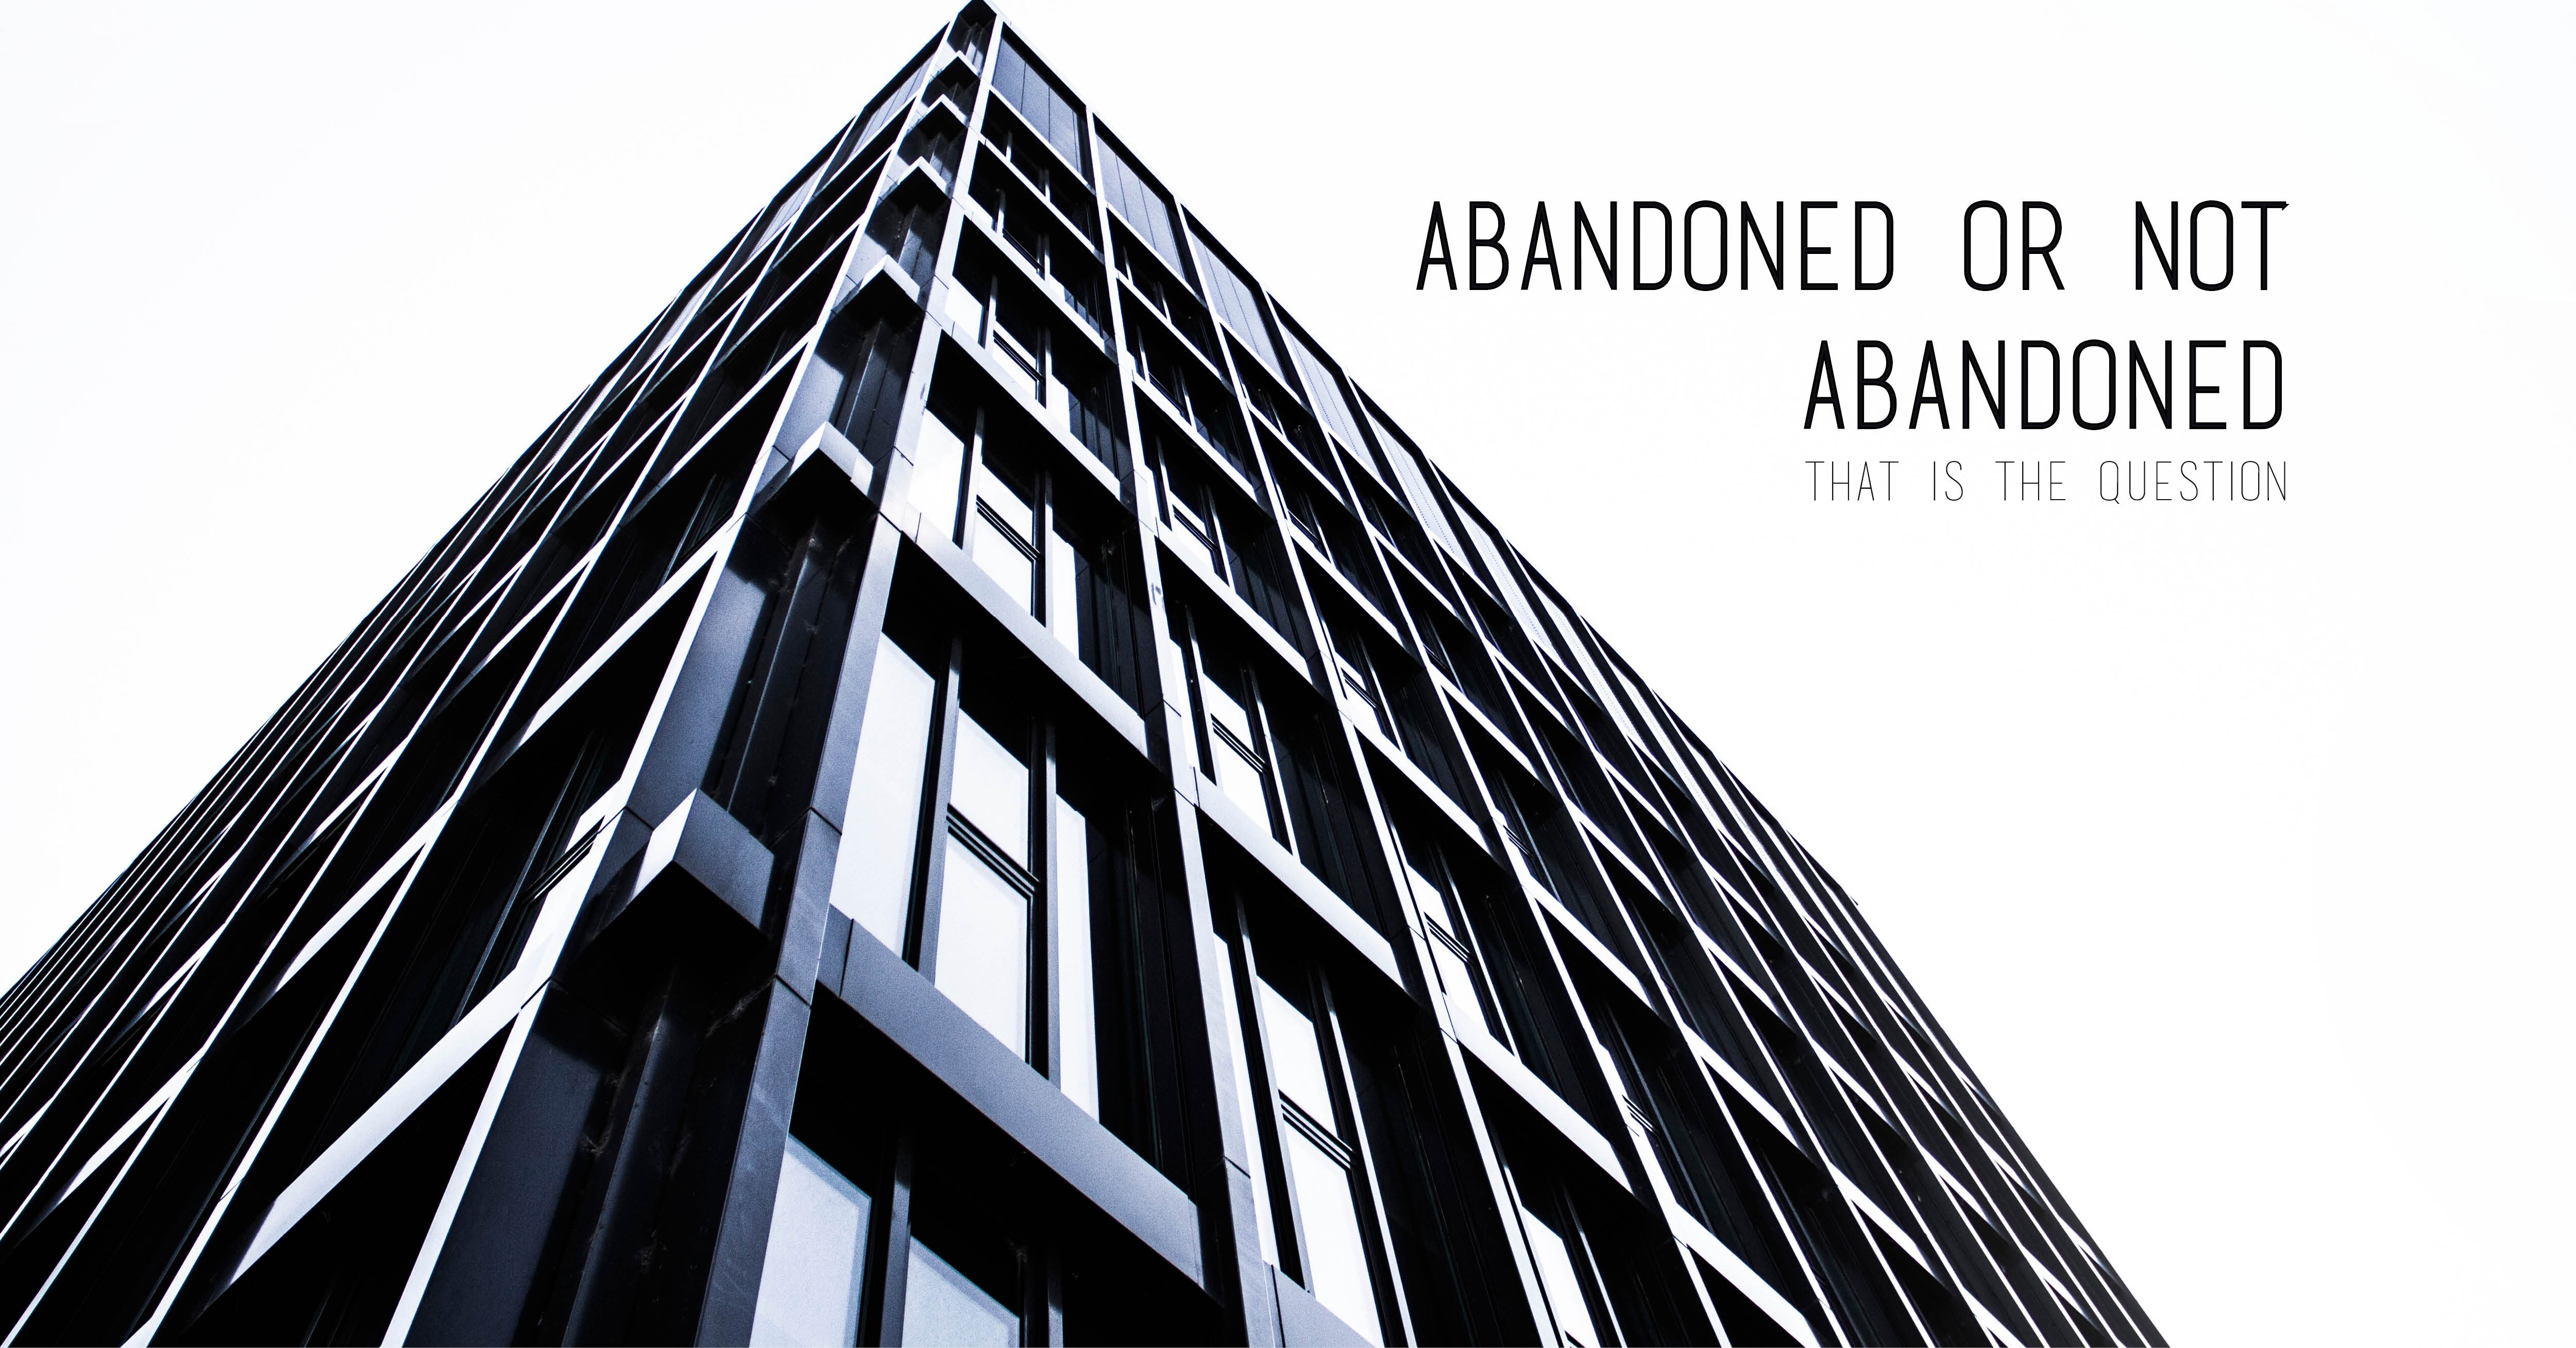 Abandoned or not abandoned…that is the question